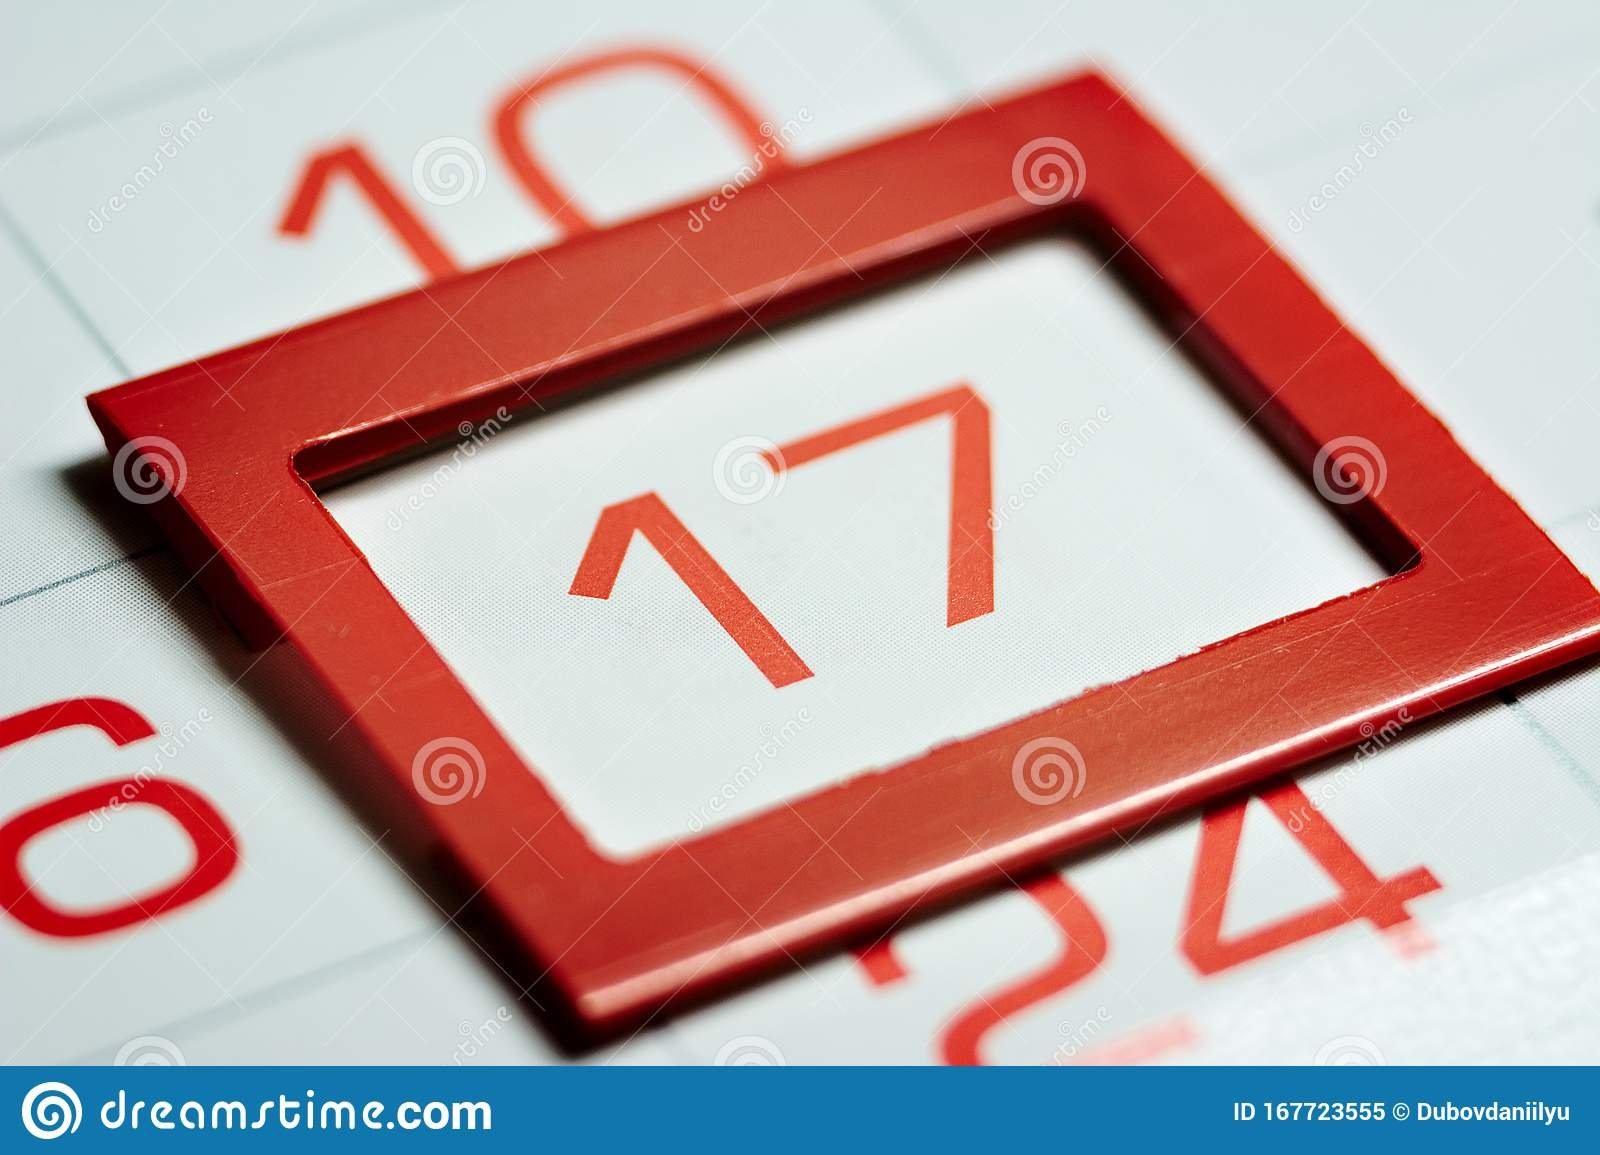 Seventeenth Of The Month Stock Image. Image Of Meetings Image Of A Calendar With 2Nd Of Month Highlighted